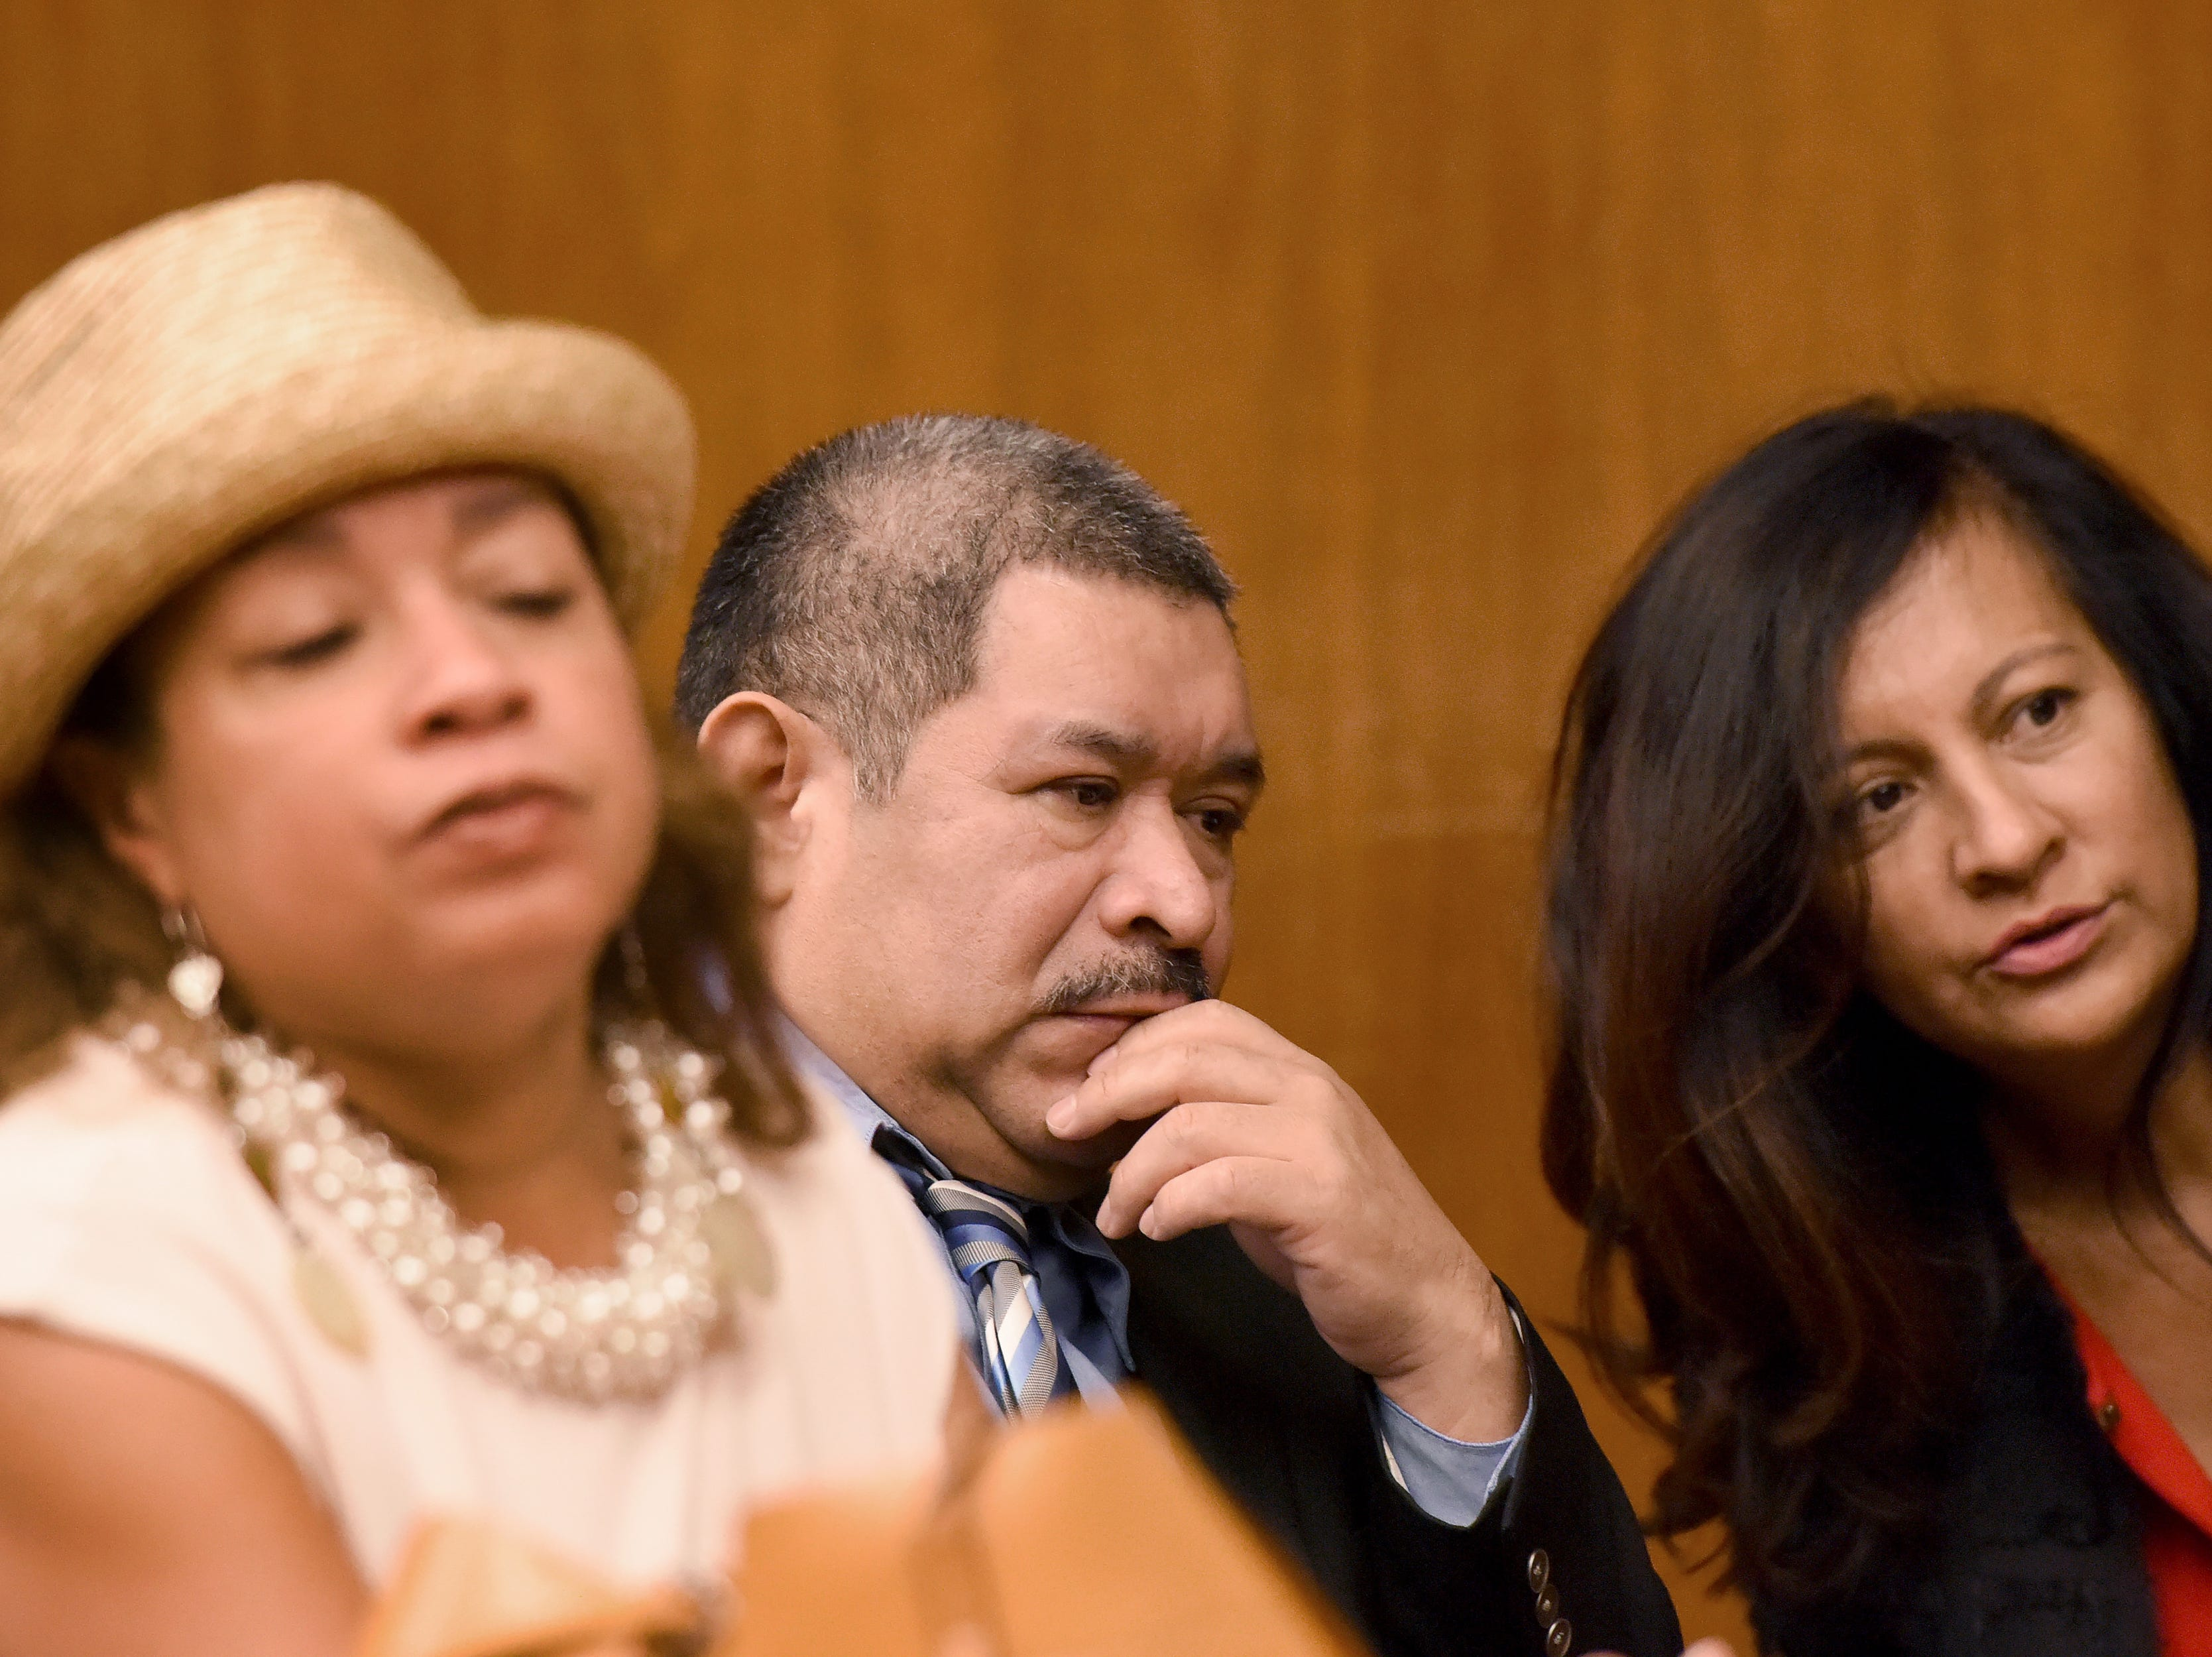 Alfredo Rosales, 53, of Englewood is on trial for several crimes, including aggravated sexual assault, criminal sexual contact, human trafficking and endangering the welfare of a child. Closing arguments were given in the case in Bergen County Superior Court on Tuesday, September 18, 2018. Rosales sits with his attorney Ana Tolentino, on left and a translator.